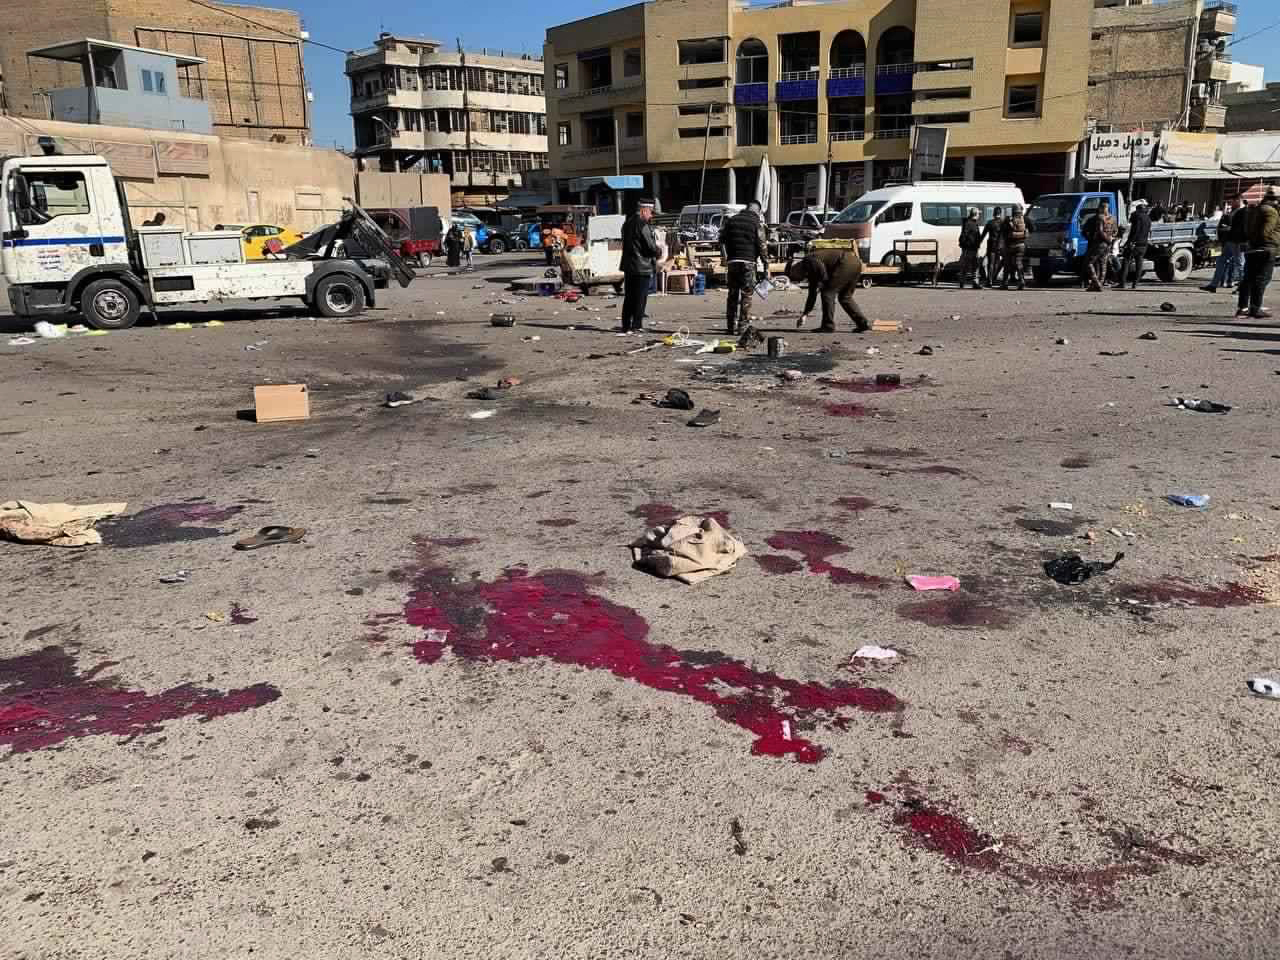 Security forces work at the site of a deadly bomb attack in a market selling used clothes, Iraq, Thursday, Jan. 21, 2021. Twin suicide bombings hit Iraq's capital Thursday killing and wounding civilians, police and state TV said.